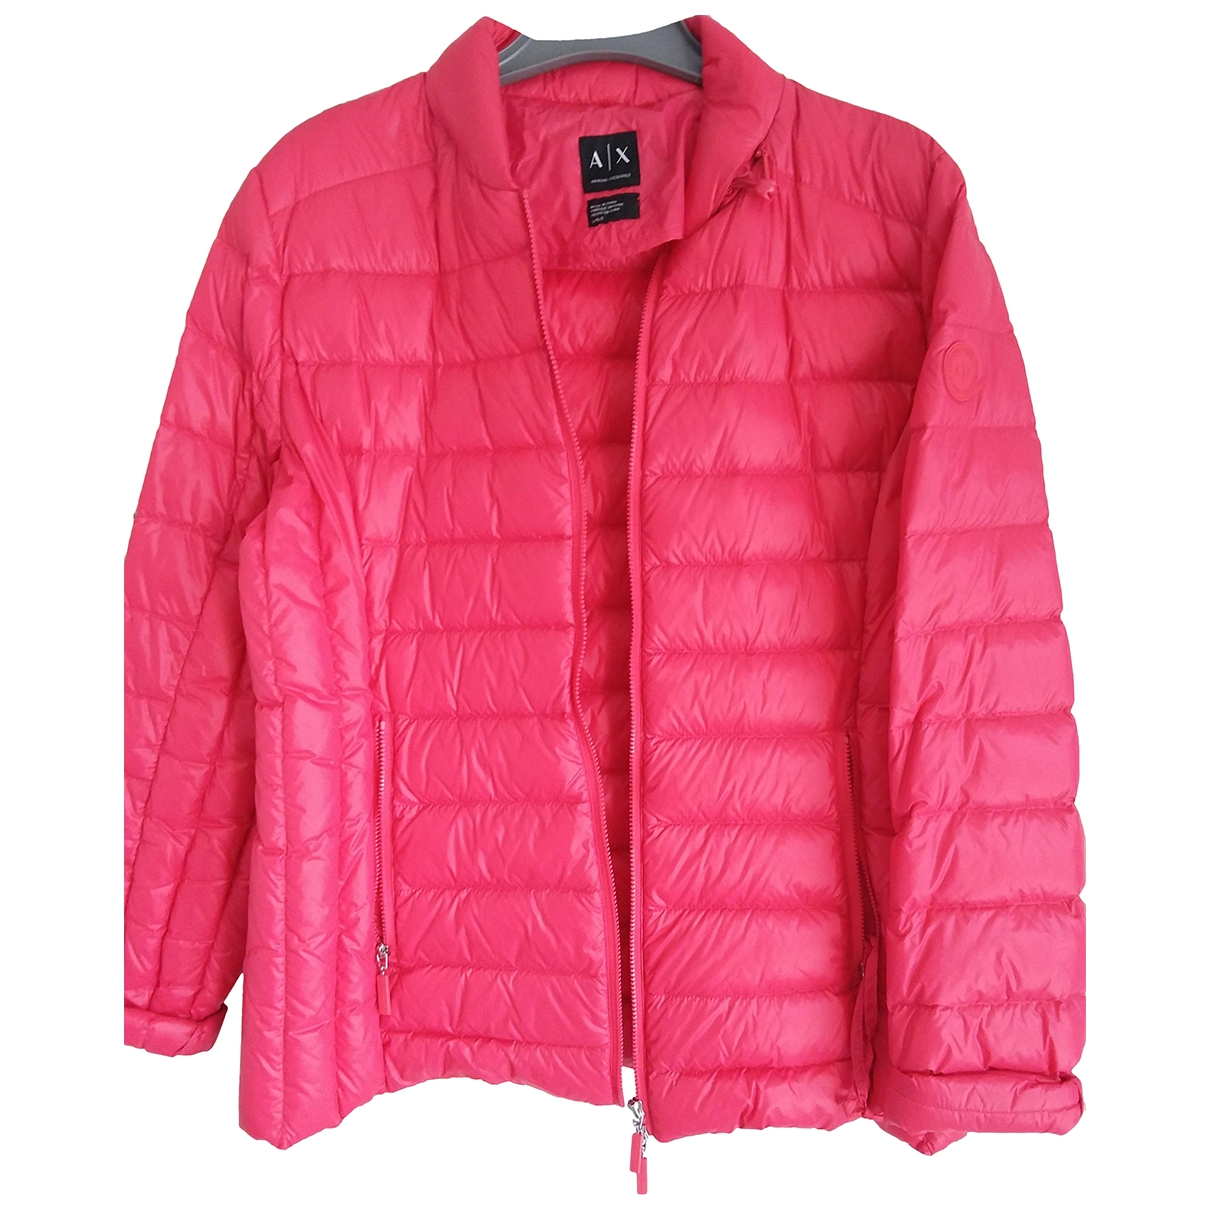 Emporio Armani \N Red Leather jacket for Women 40 IT